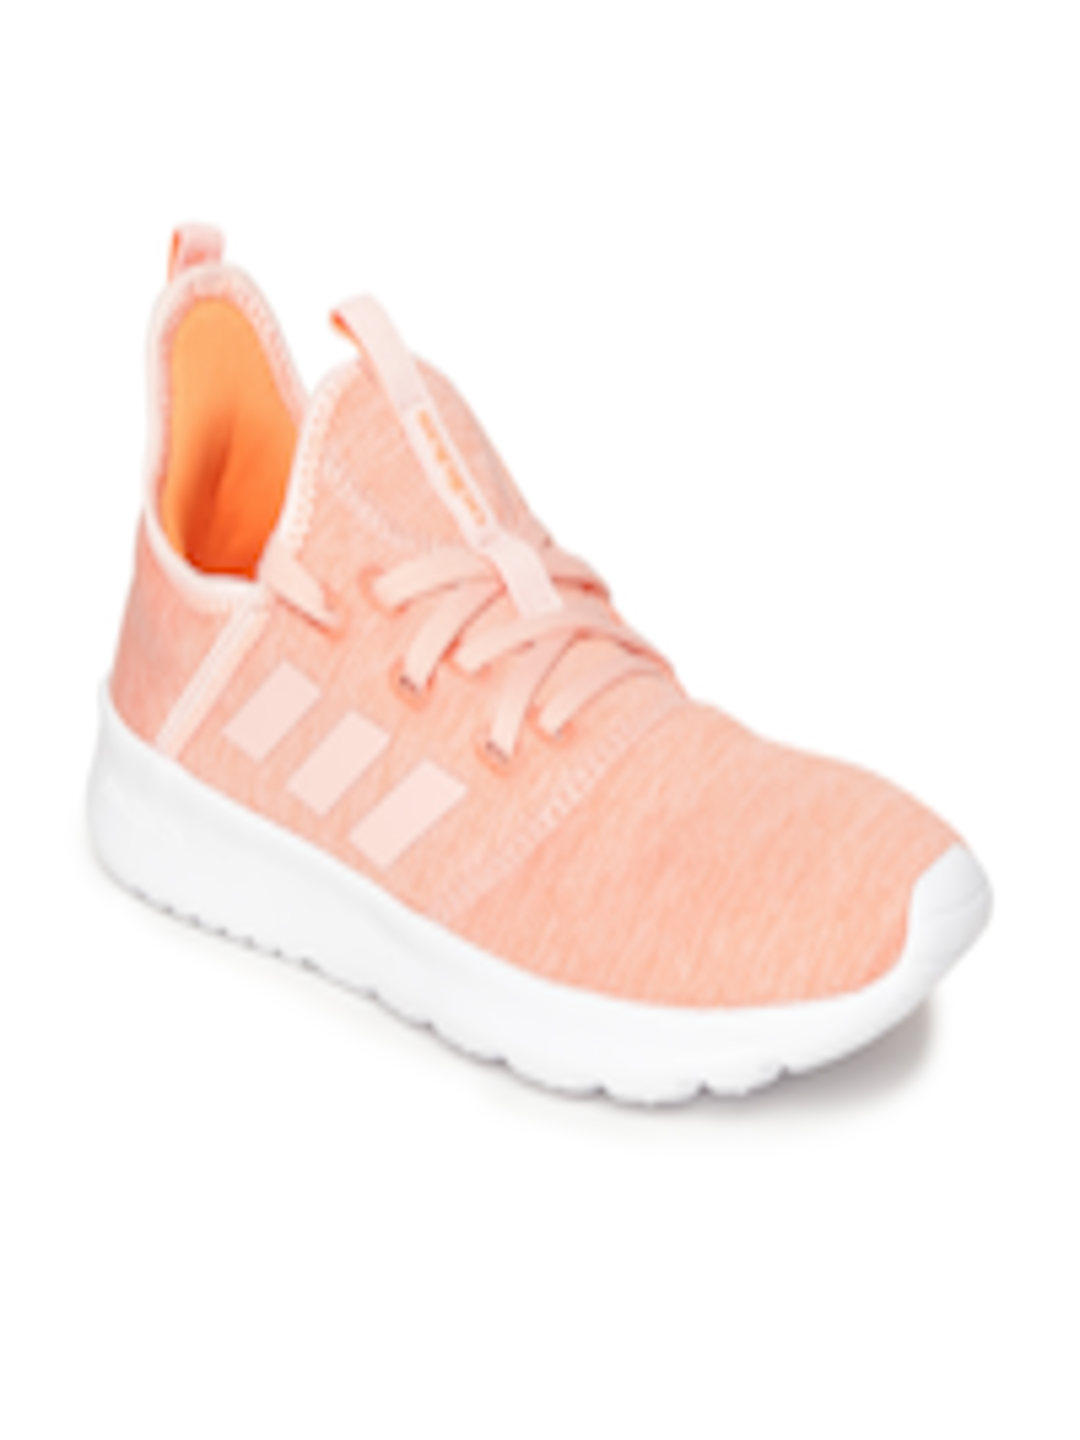 Energian Saasto-These Adidas Originals Adidas Women's